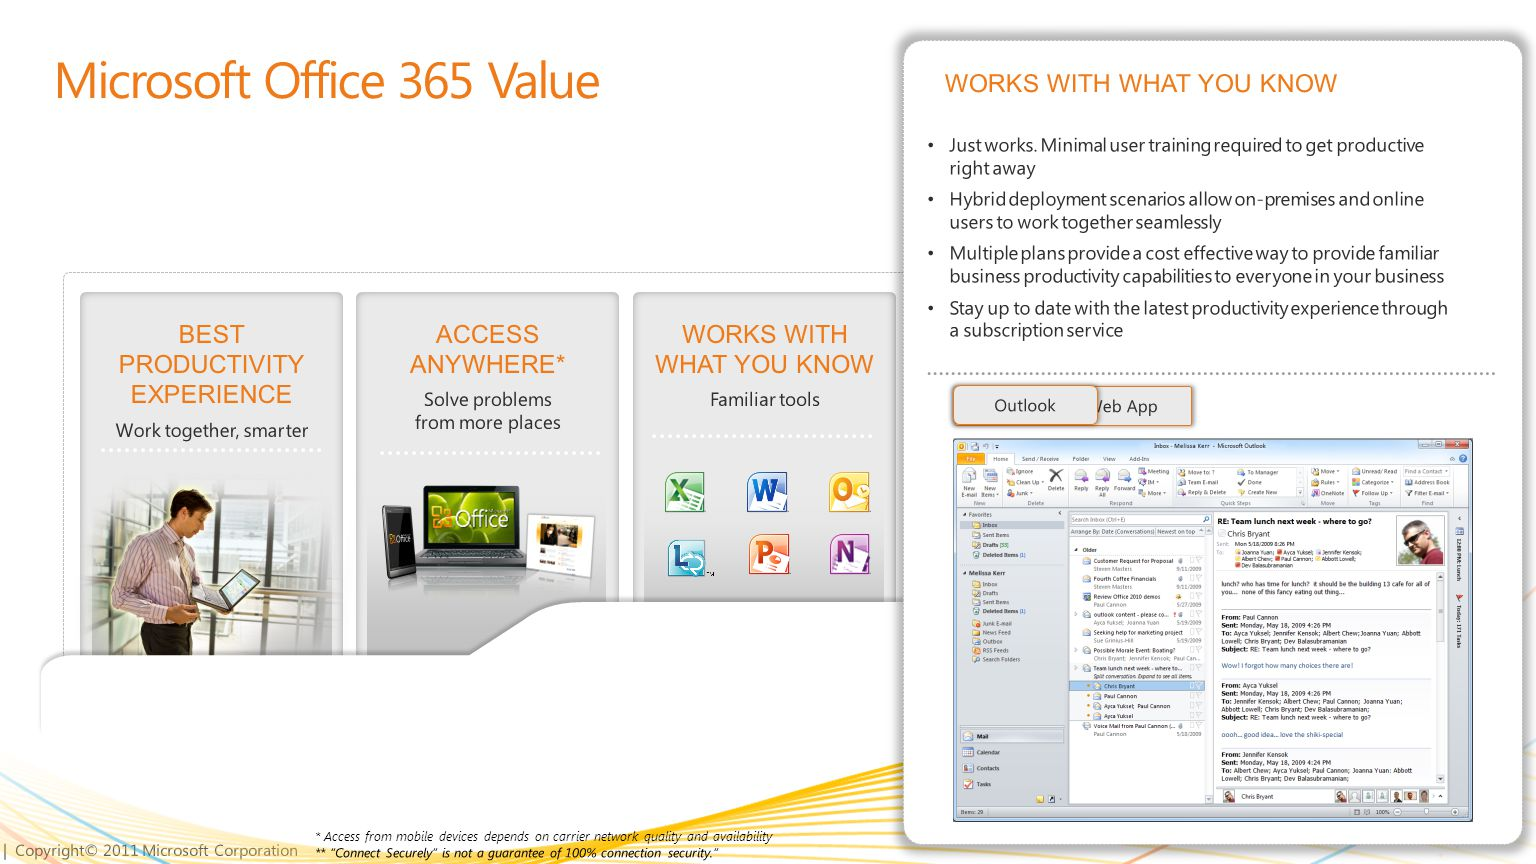 | Copyright© 2011 Microsoft Corporation BEST PRODUCTIVITY EXPERIENCE Work together, smarter Microsoft Office 365 Value ACCESS ANYWHERE* Solve problems from more places WORKS WITH WHAT YOU KNOW Familiar tools ROBUST SECURITY AND RELIABILITY 99.9% uptime.